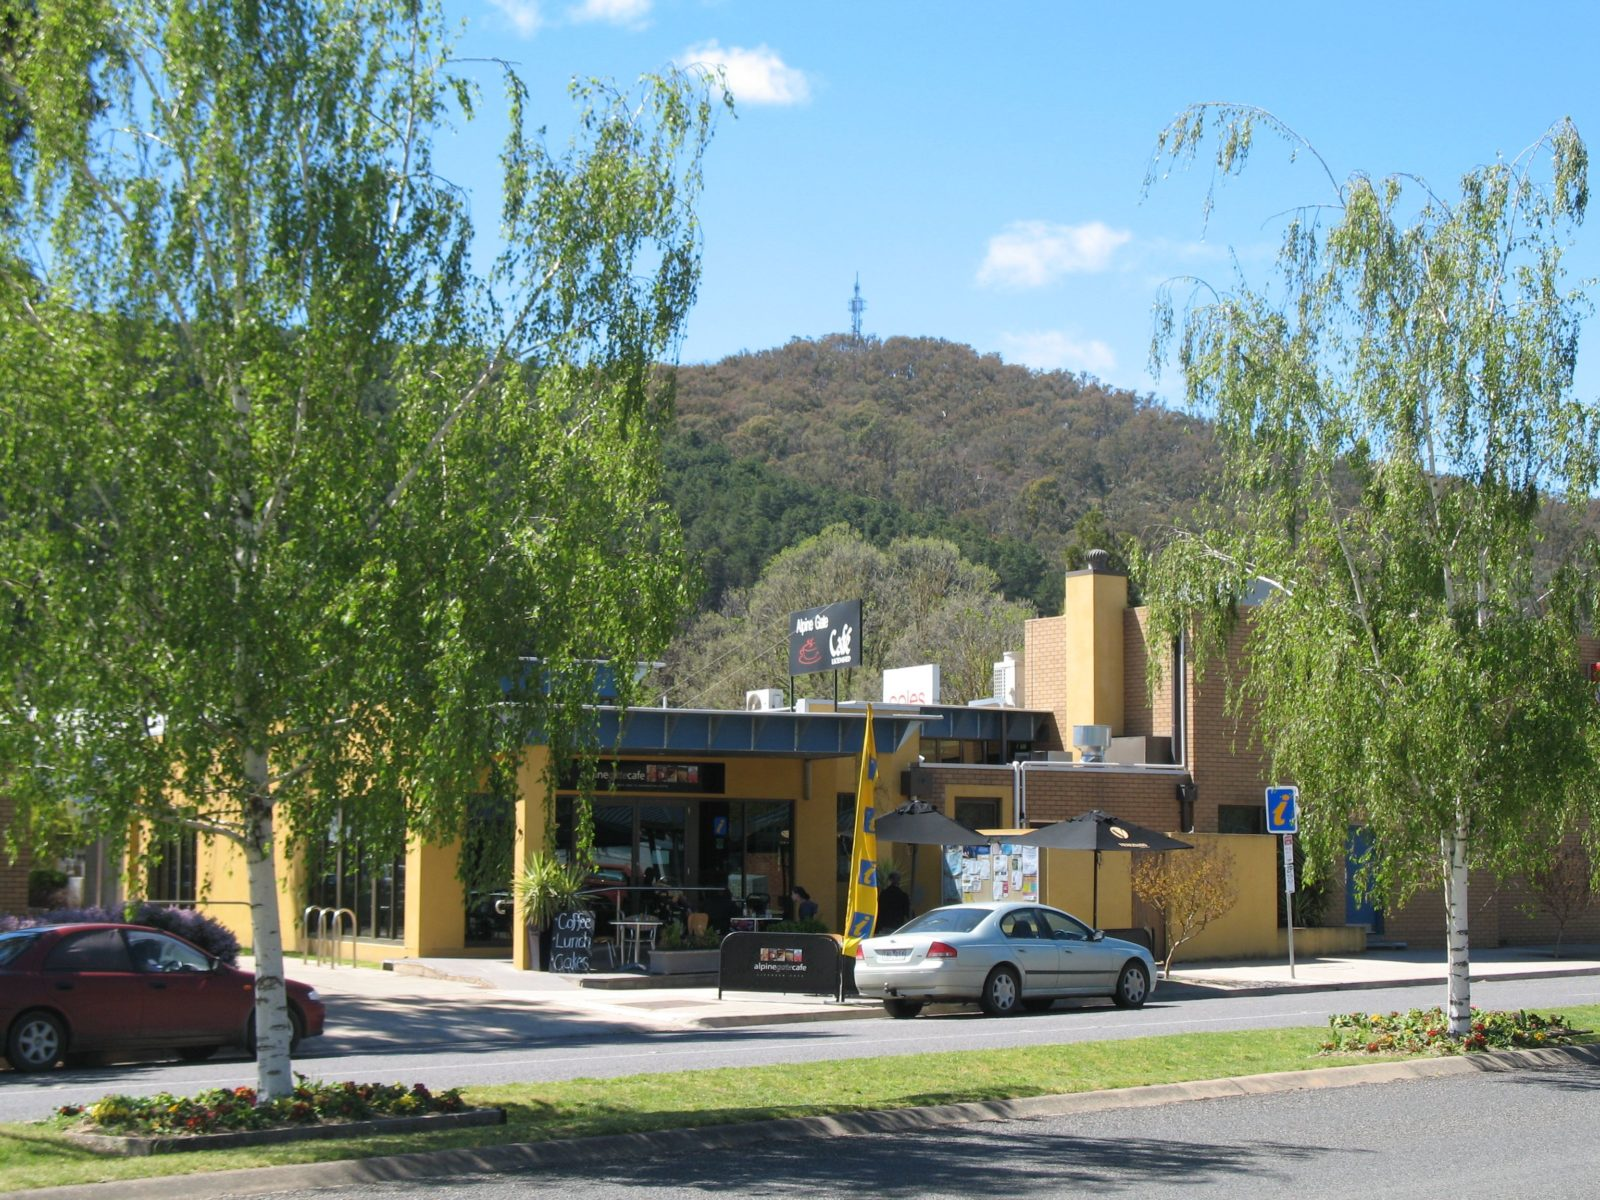 Myrtleford Visitor Information Centre Exterior